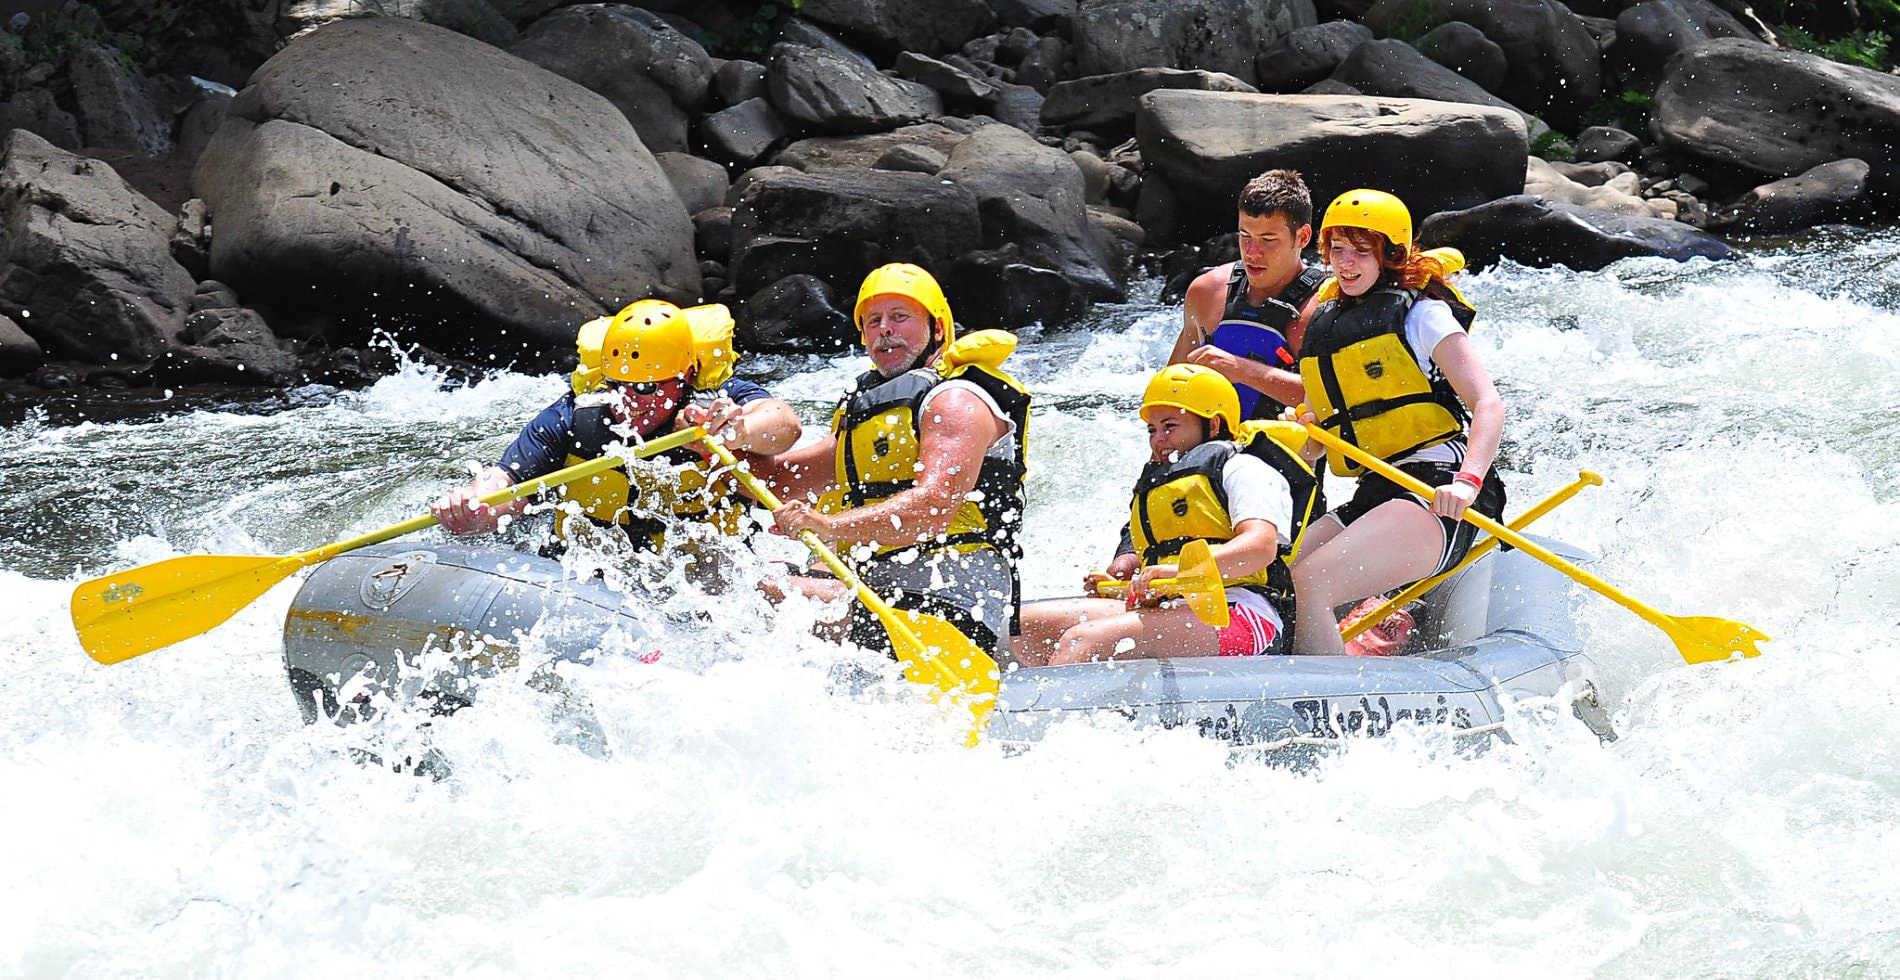 A grey river raft going down strong river rapids with a group of people wearing yellow safety garb